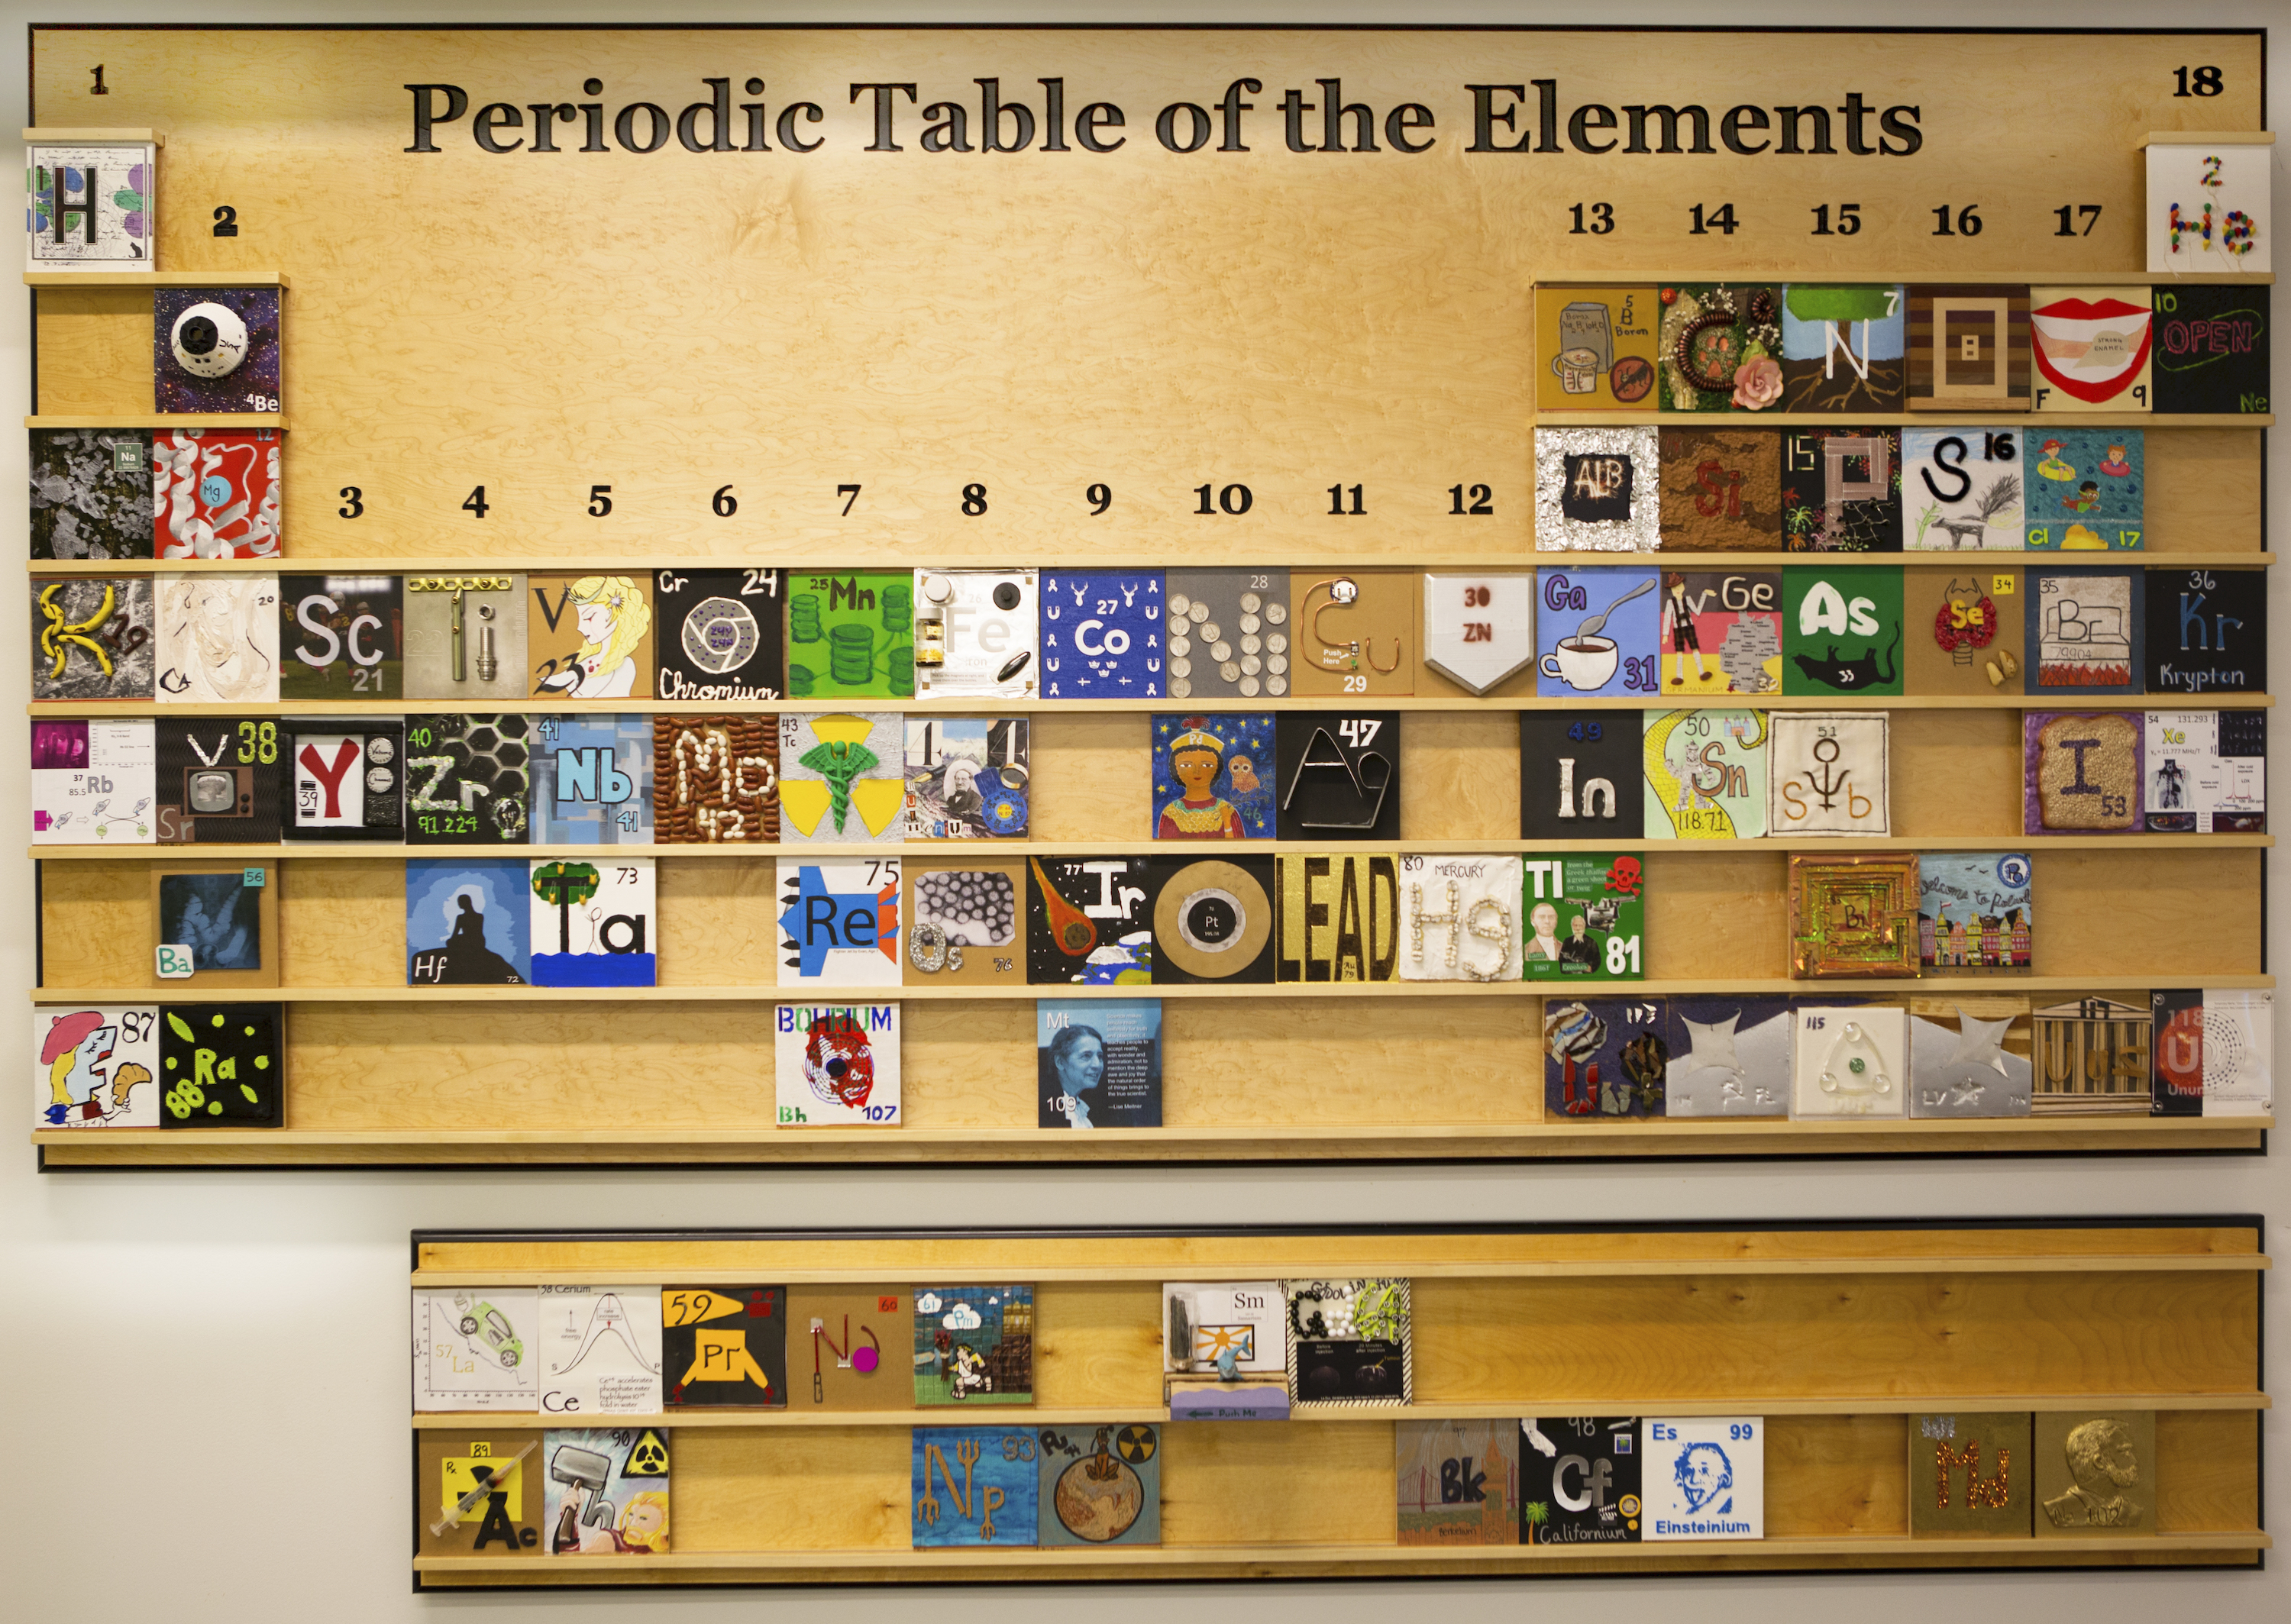 a periodic table of elements on the wall